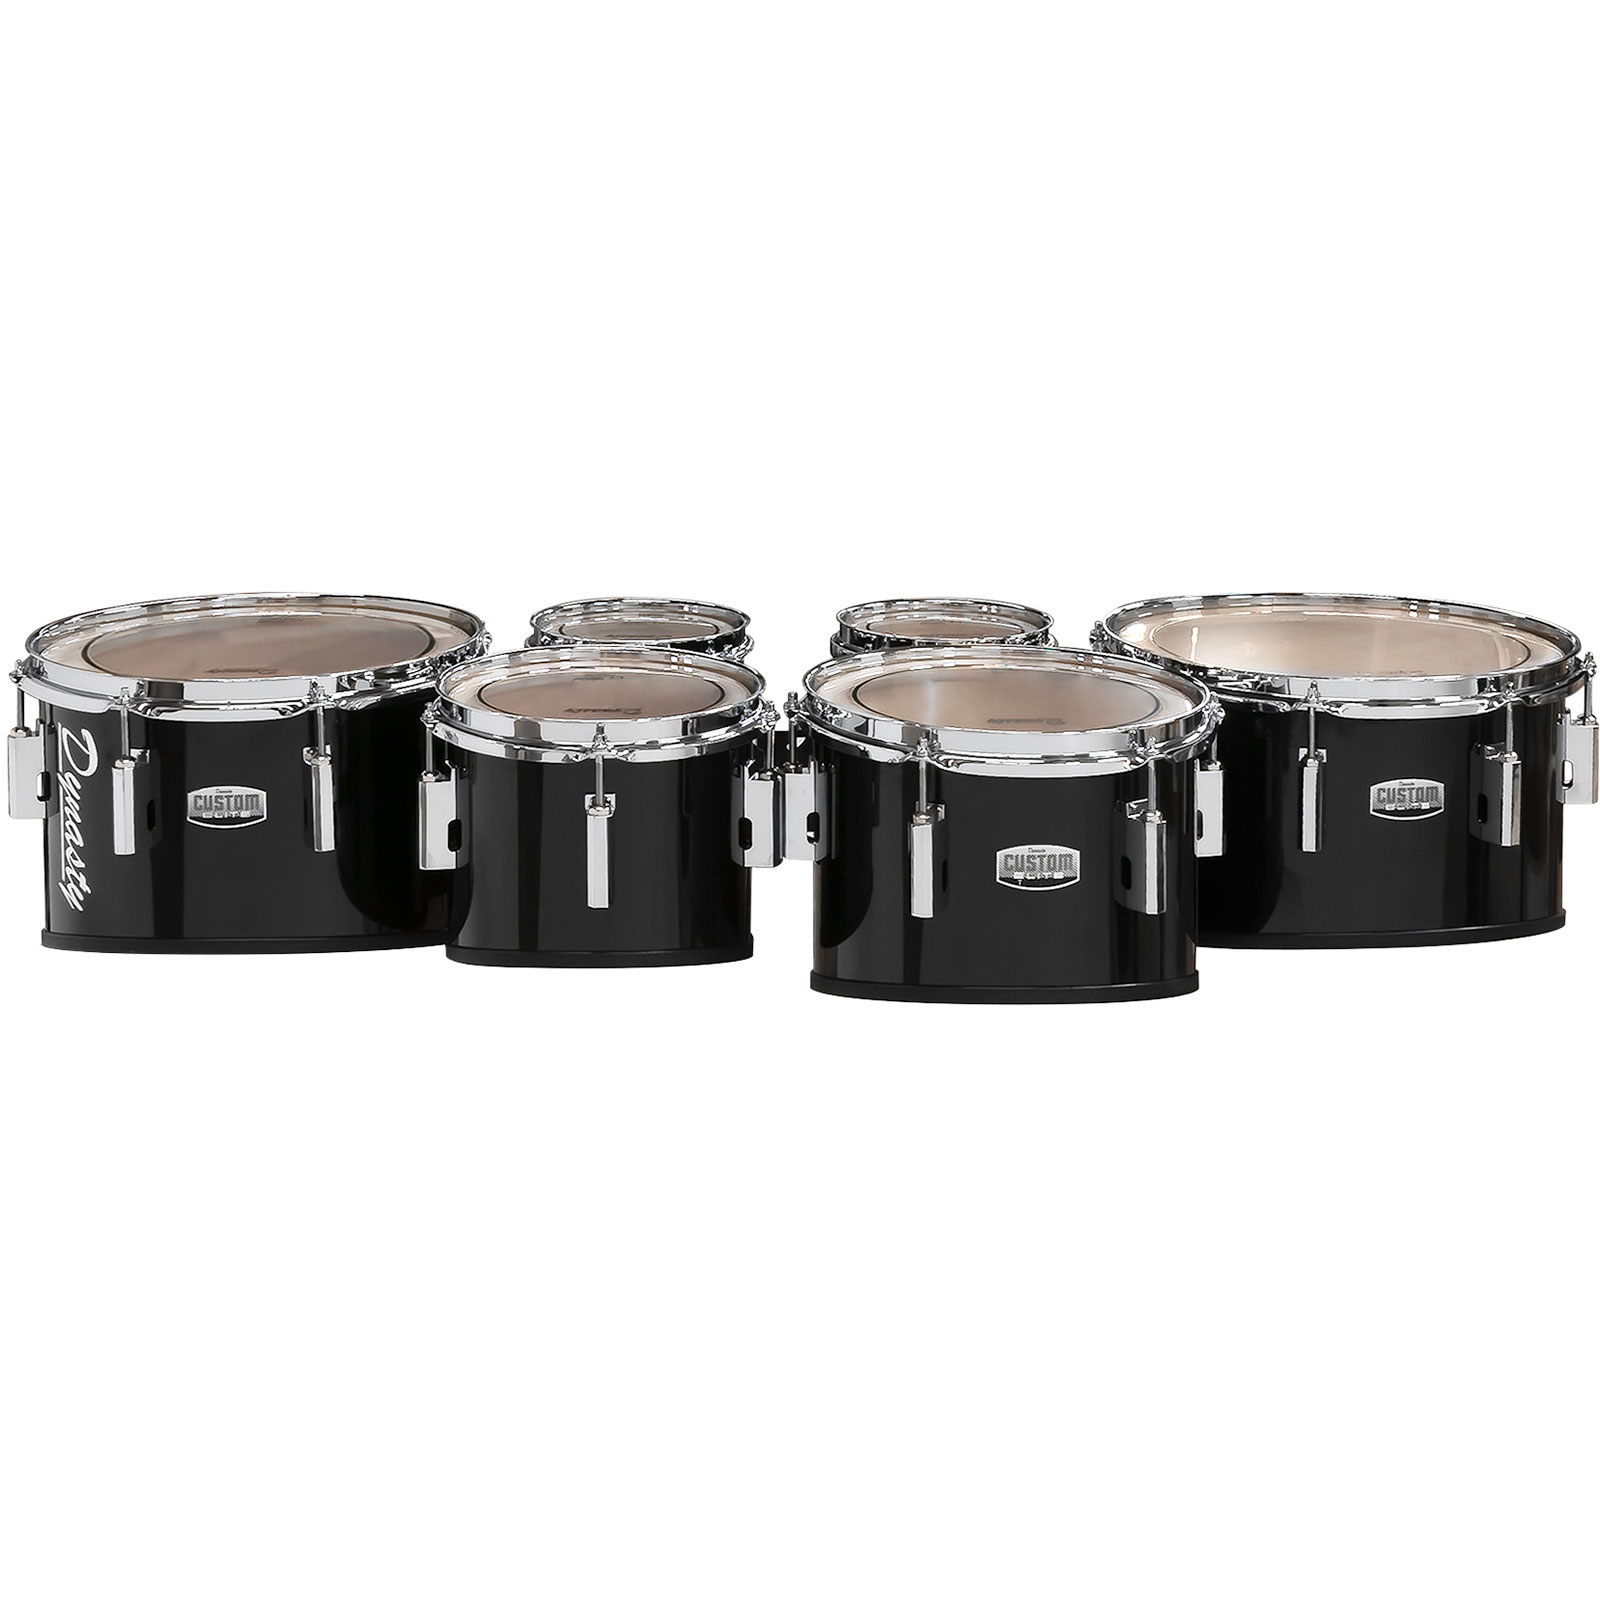 """Dynasty 6-6-8-10-12-14"""" Custom Elite Marching Tenors with Chrome Hardware in Black"""